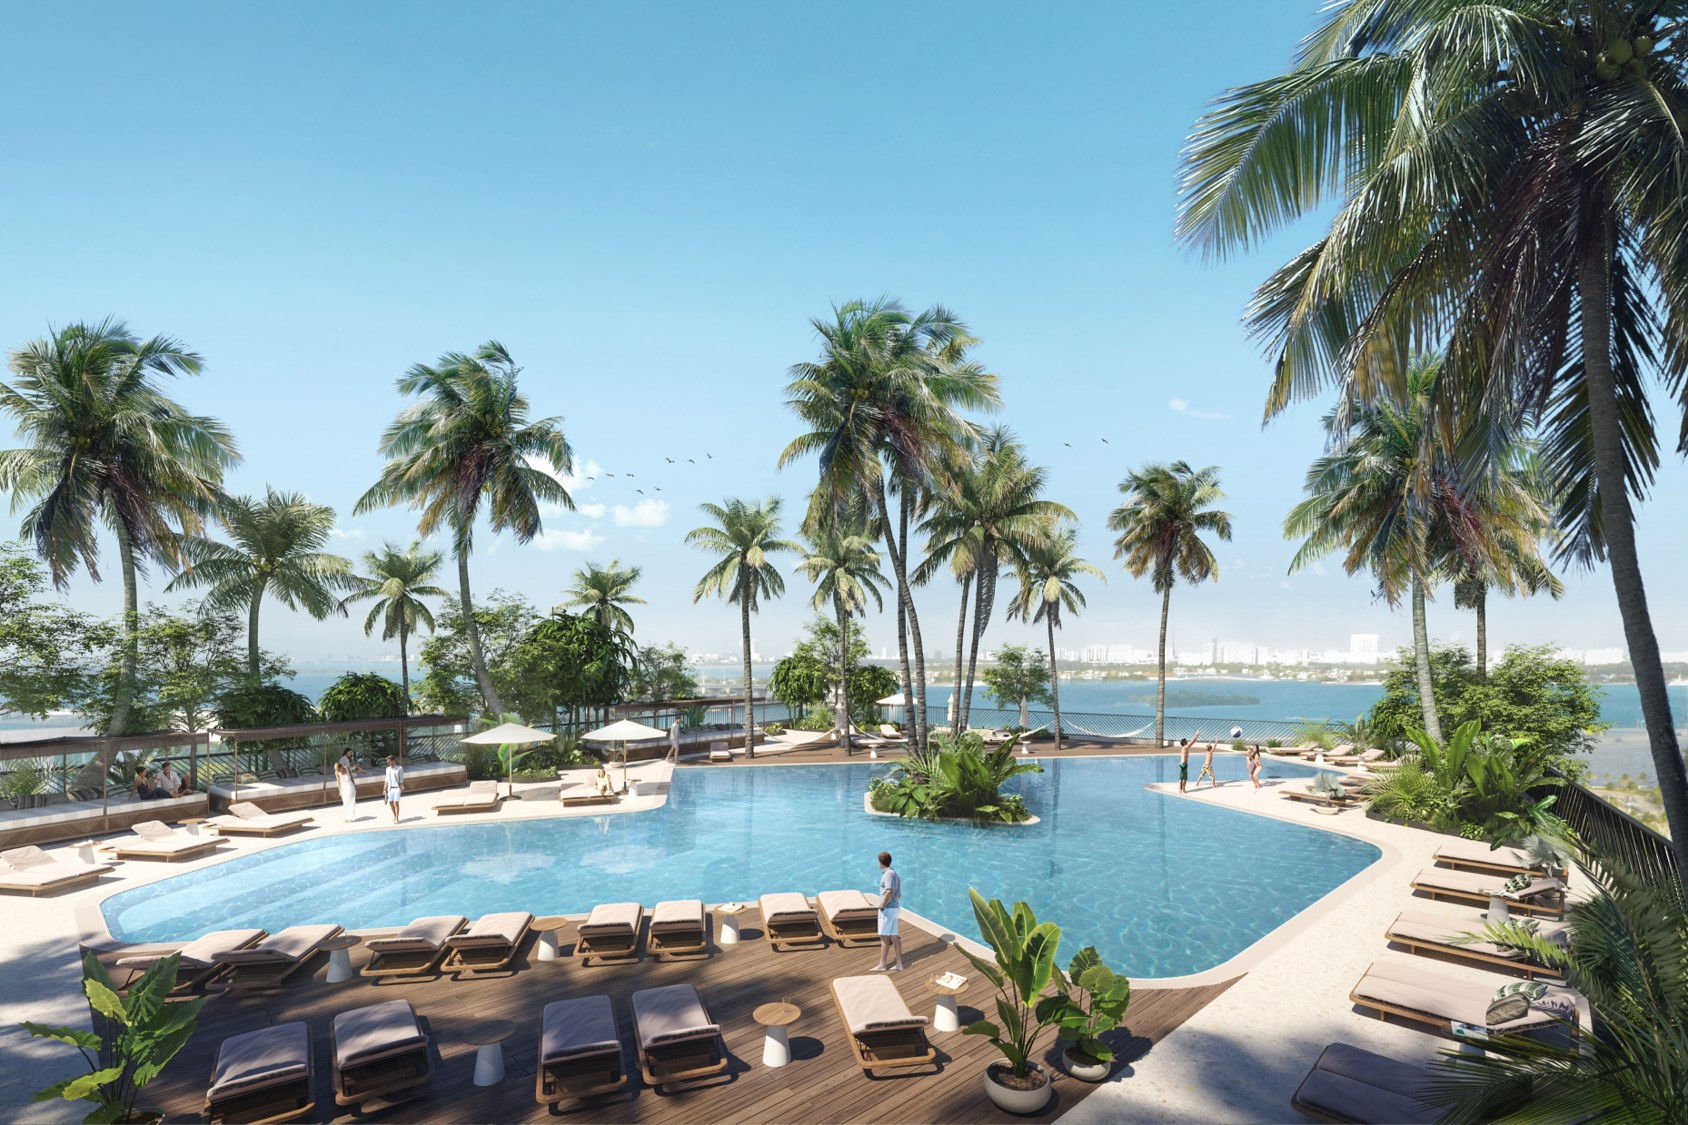 Natiivo Residence rendering of outdoor pool and cabanas.